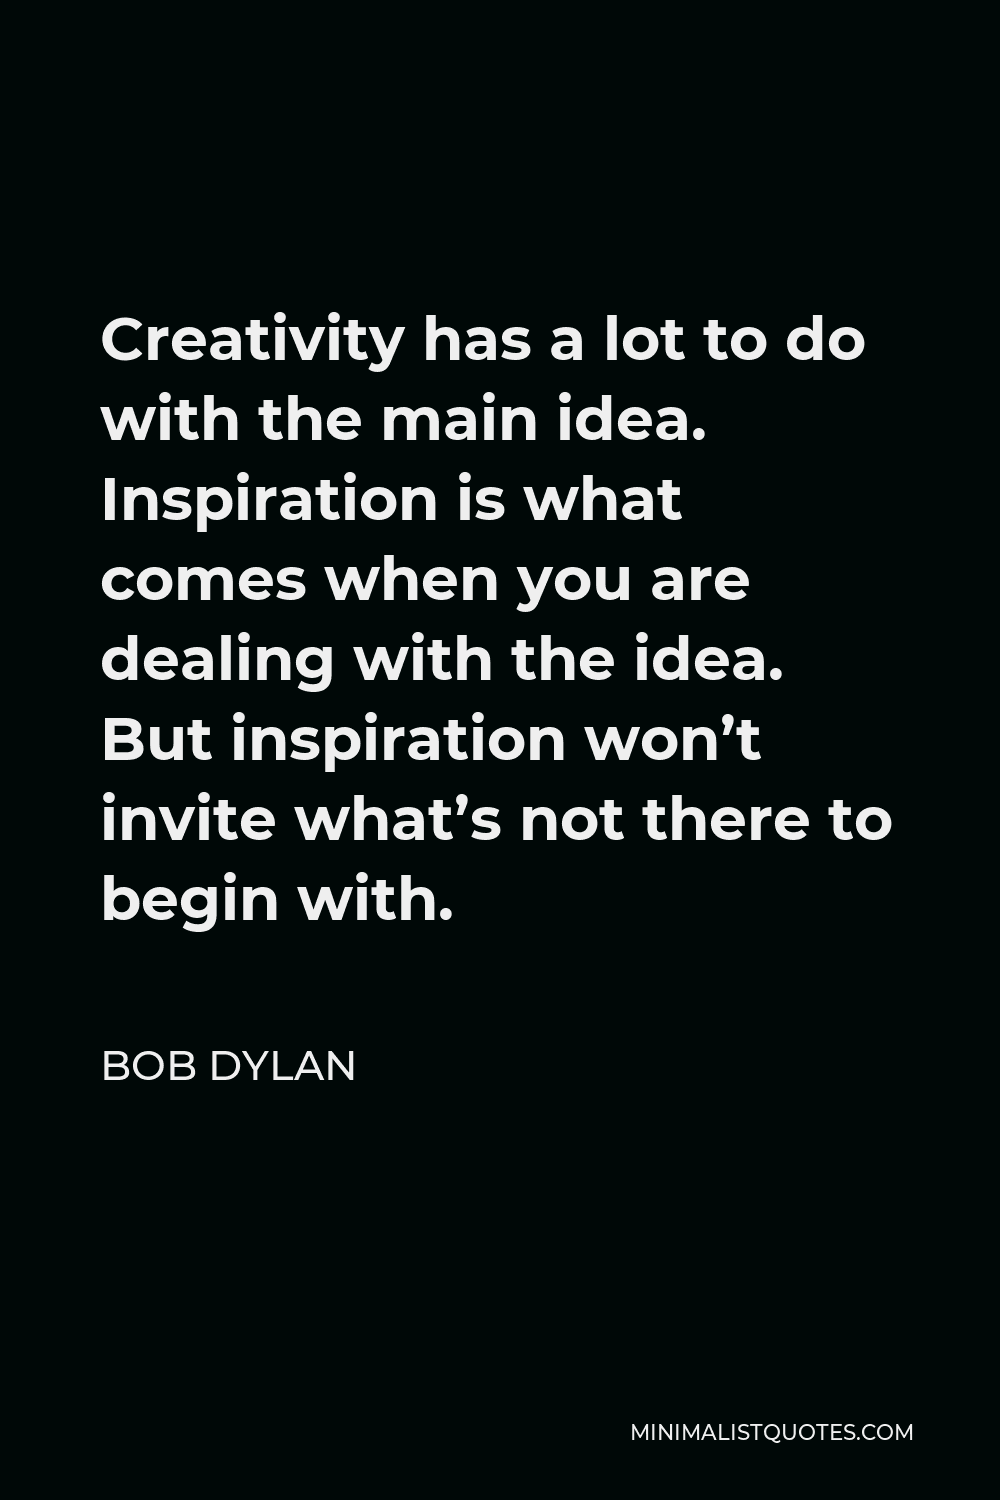 Bob Dylan Quote - Creativity has a lot to do with the main idea. Inspiration is what comes when you are dealing with the idea. But inspiration won't invite what's not there to begin with.